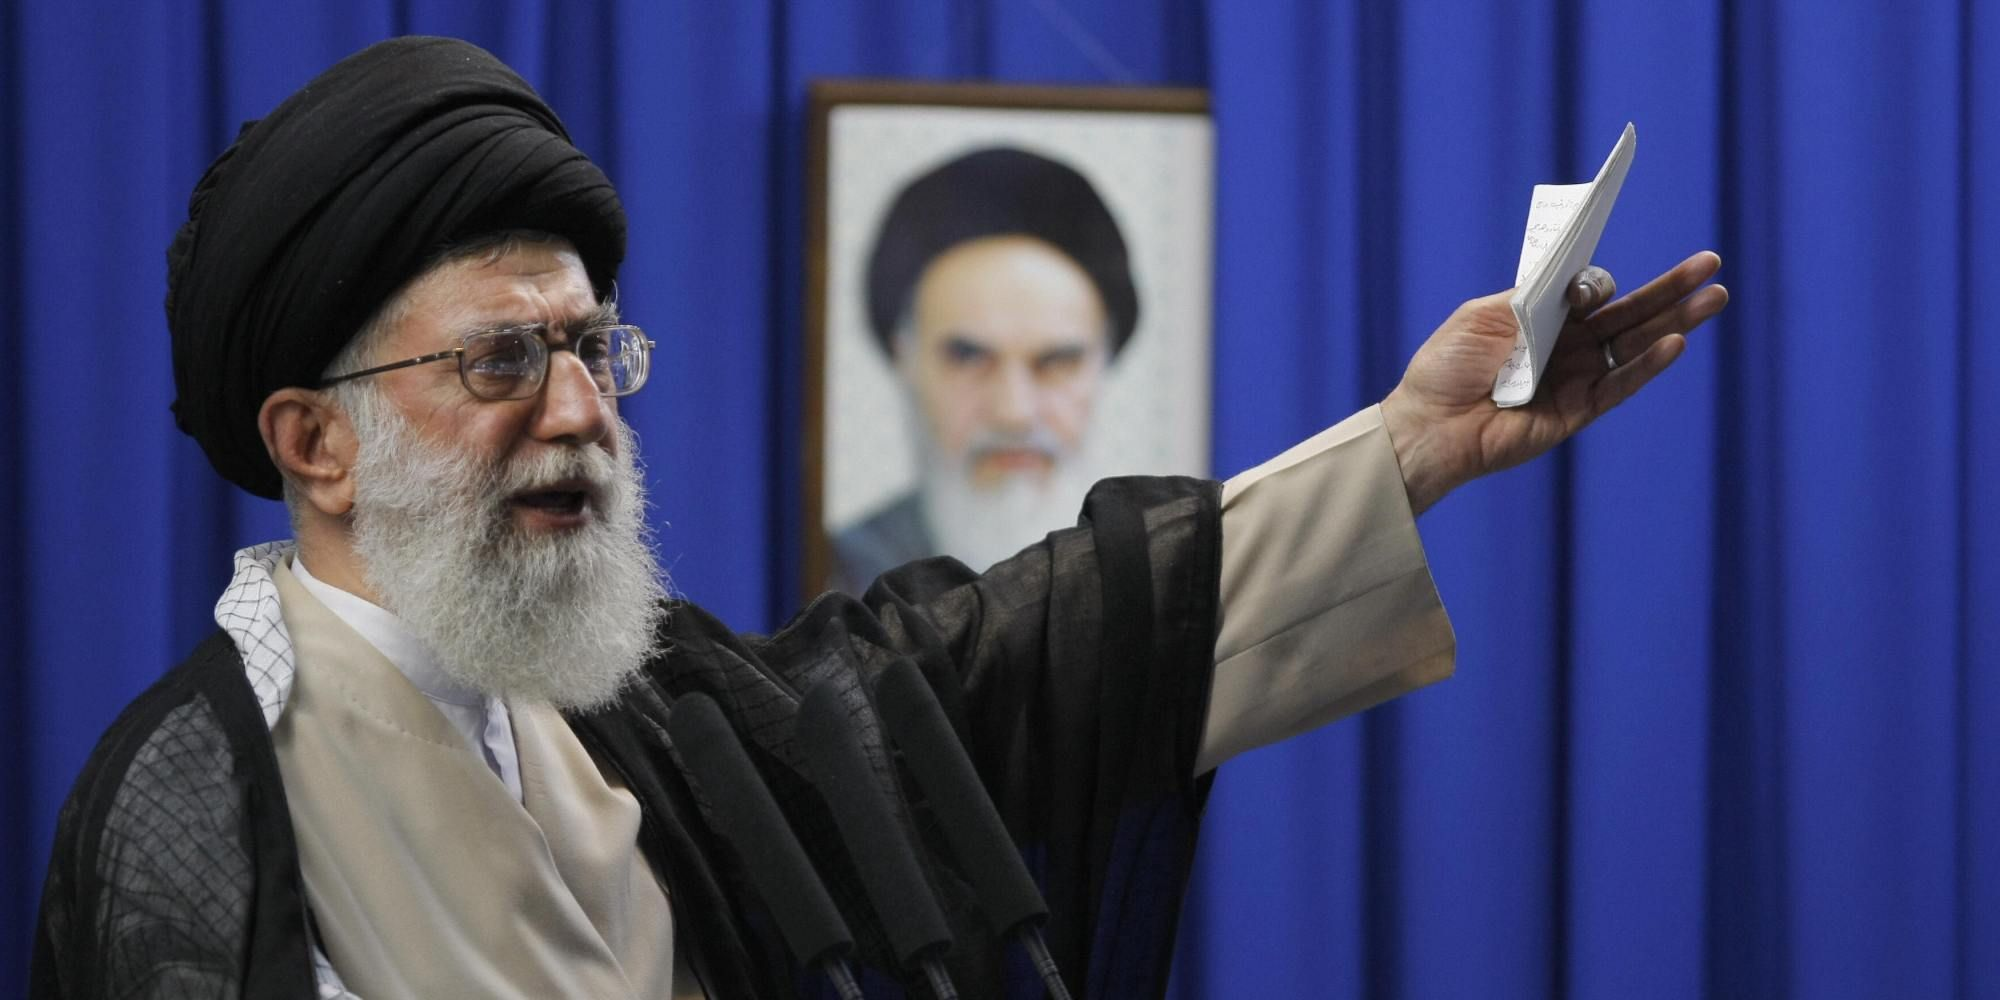 Khamenei S Conglomerate Thrived As Sanctions Squeezed Iran Iran